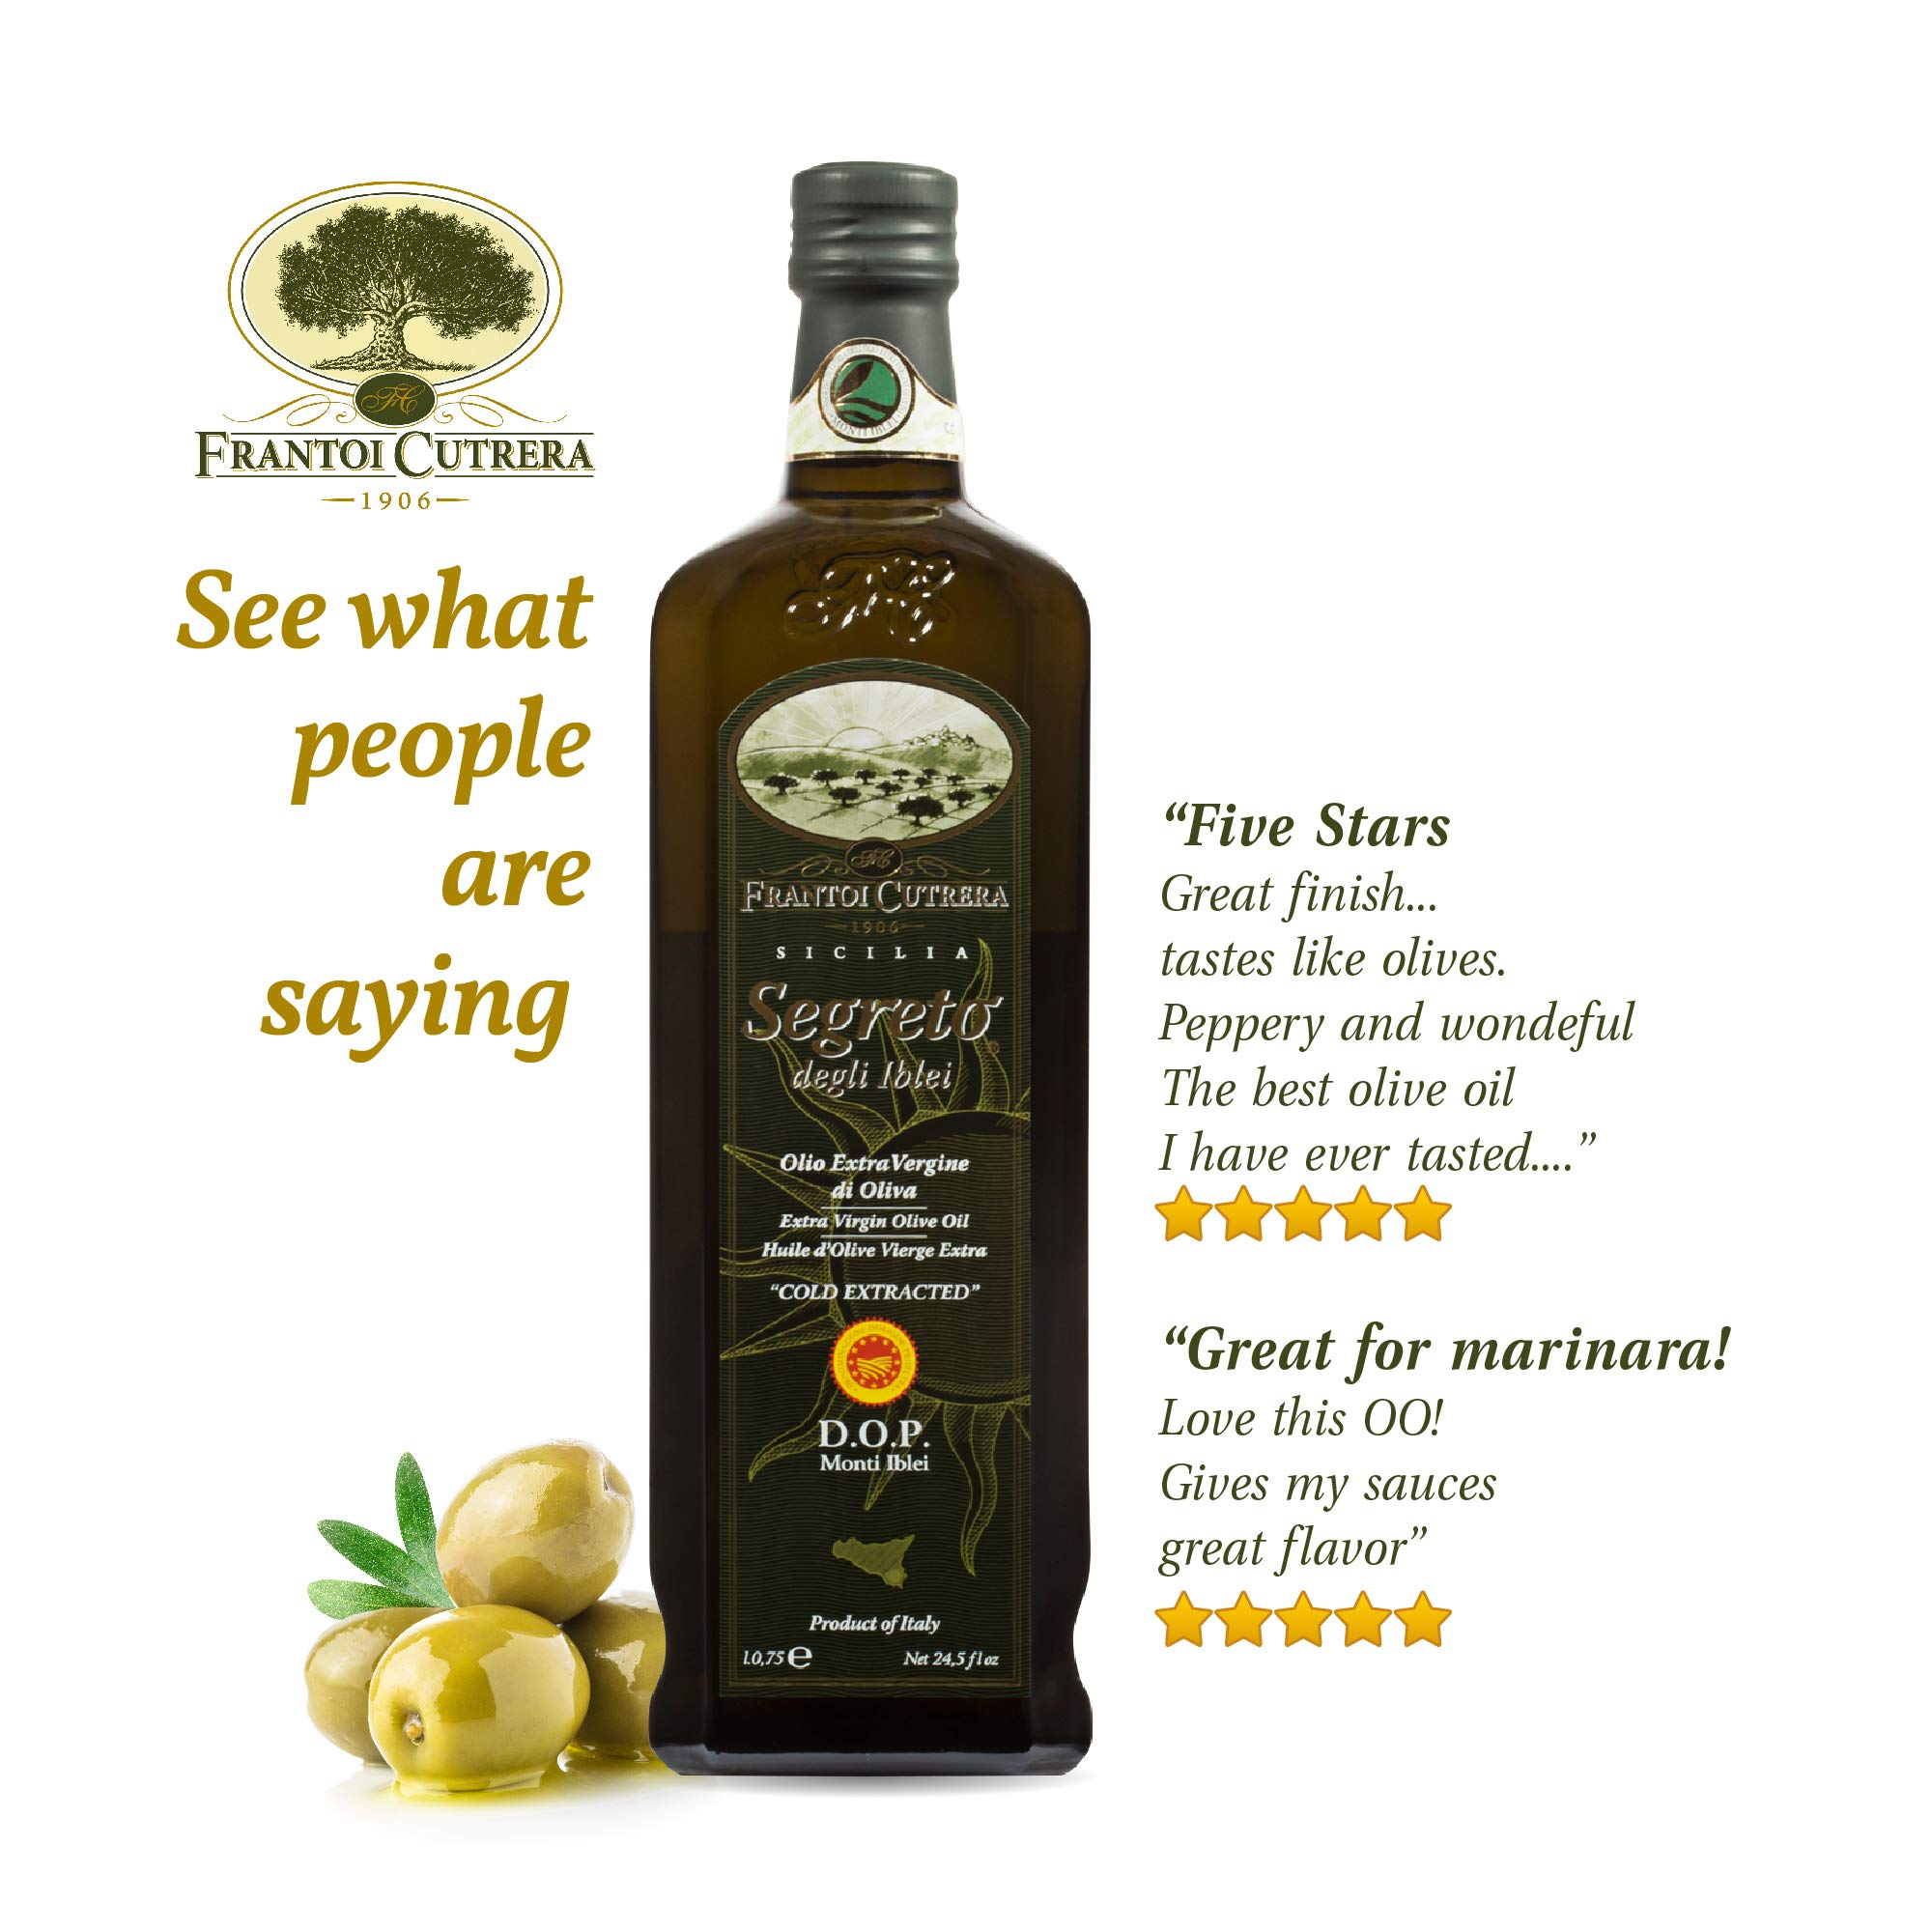 Frantoi Cutrera Segreto Degli Iblei Cold Extracted Extra Virgin Olive Oil D.O.P - Product of Italy, 24.5fl.oz (4 pack) by Frantoi Cutrera (Image #8)